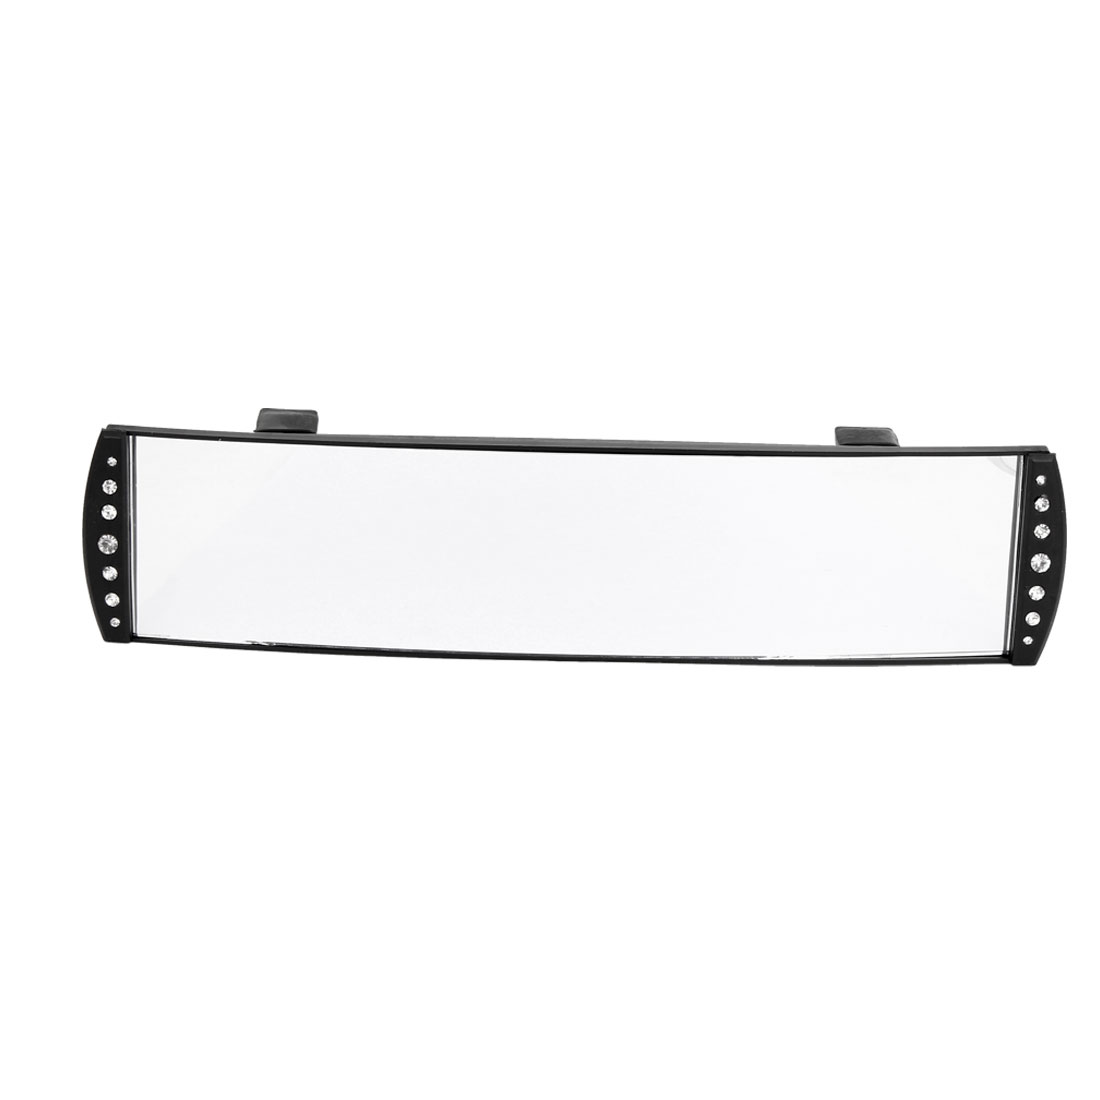 JDM 270mm Wide Curve Interior Black Plastic Rear View Mirror for Car SUV Truck